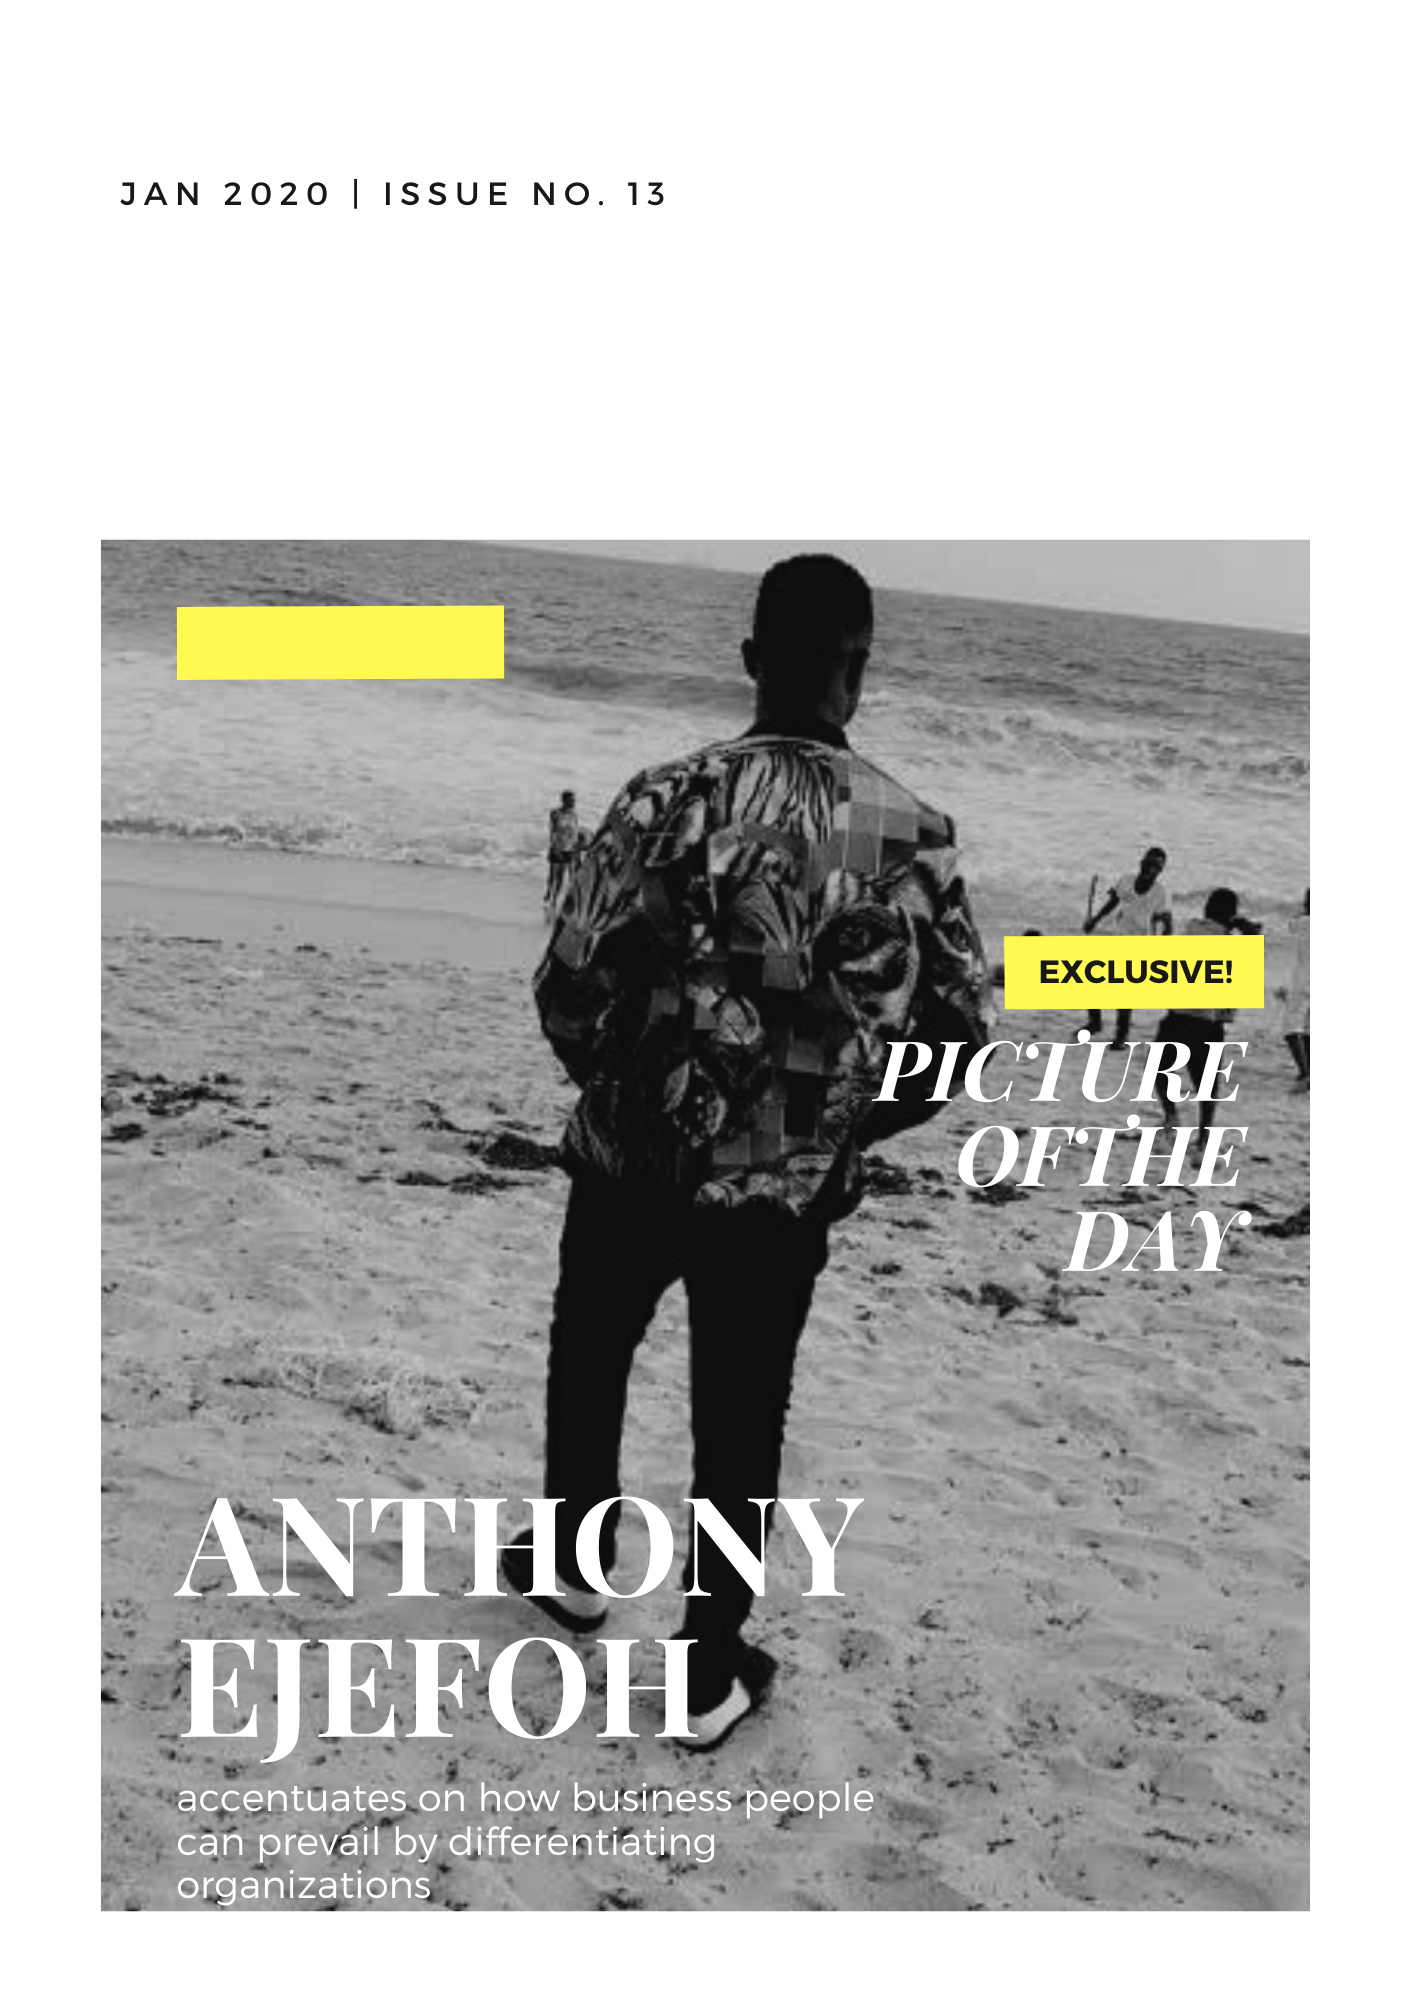 Anthony Ejefoh